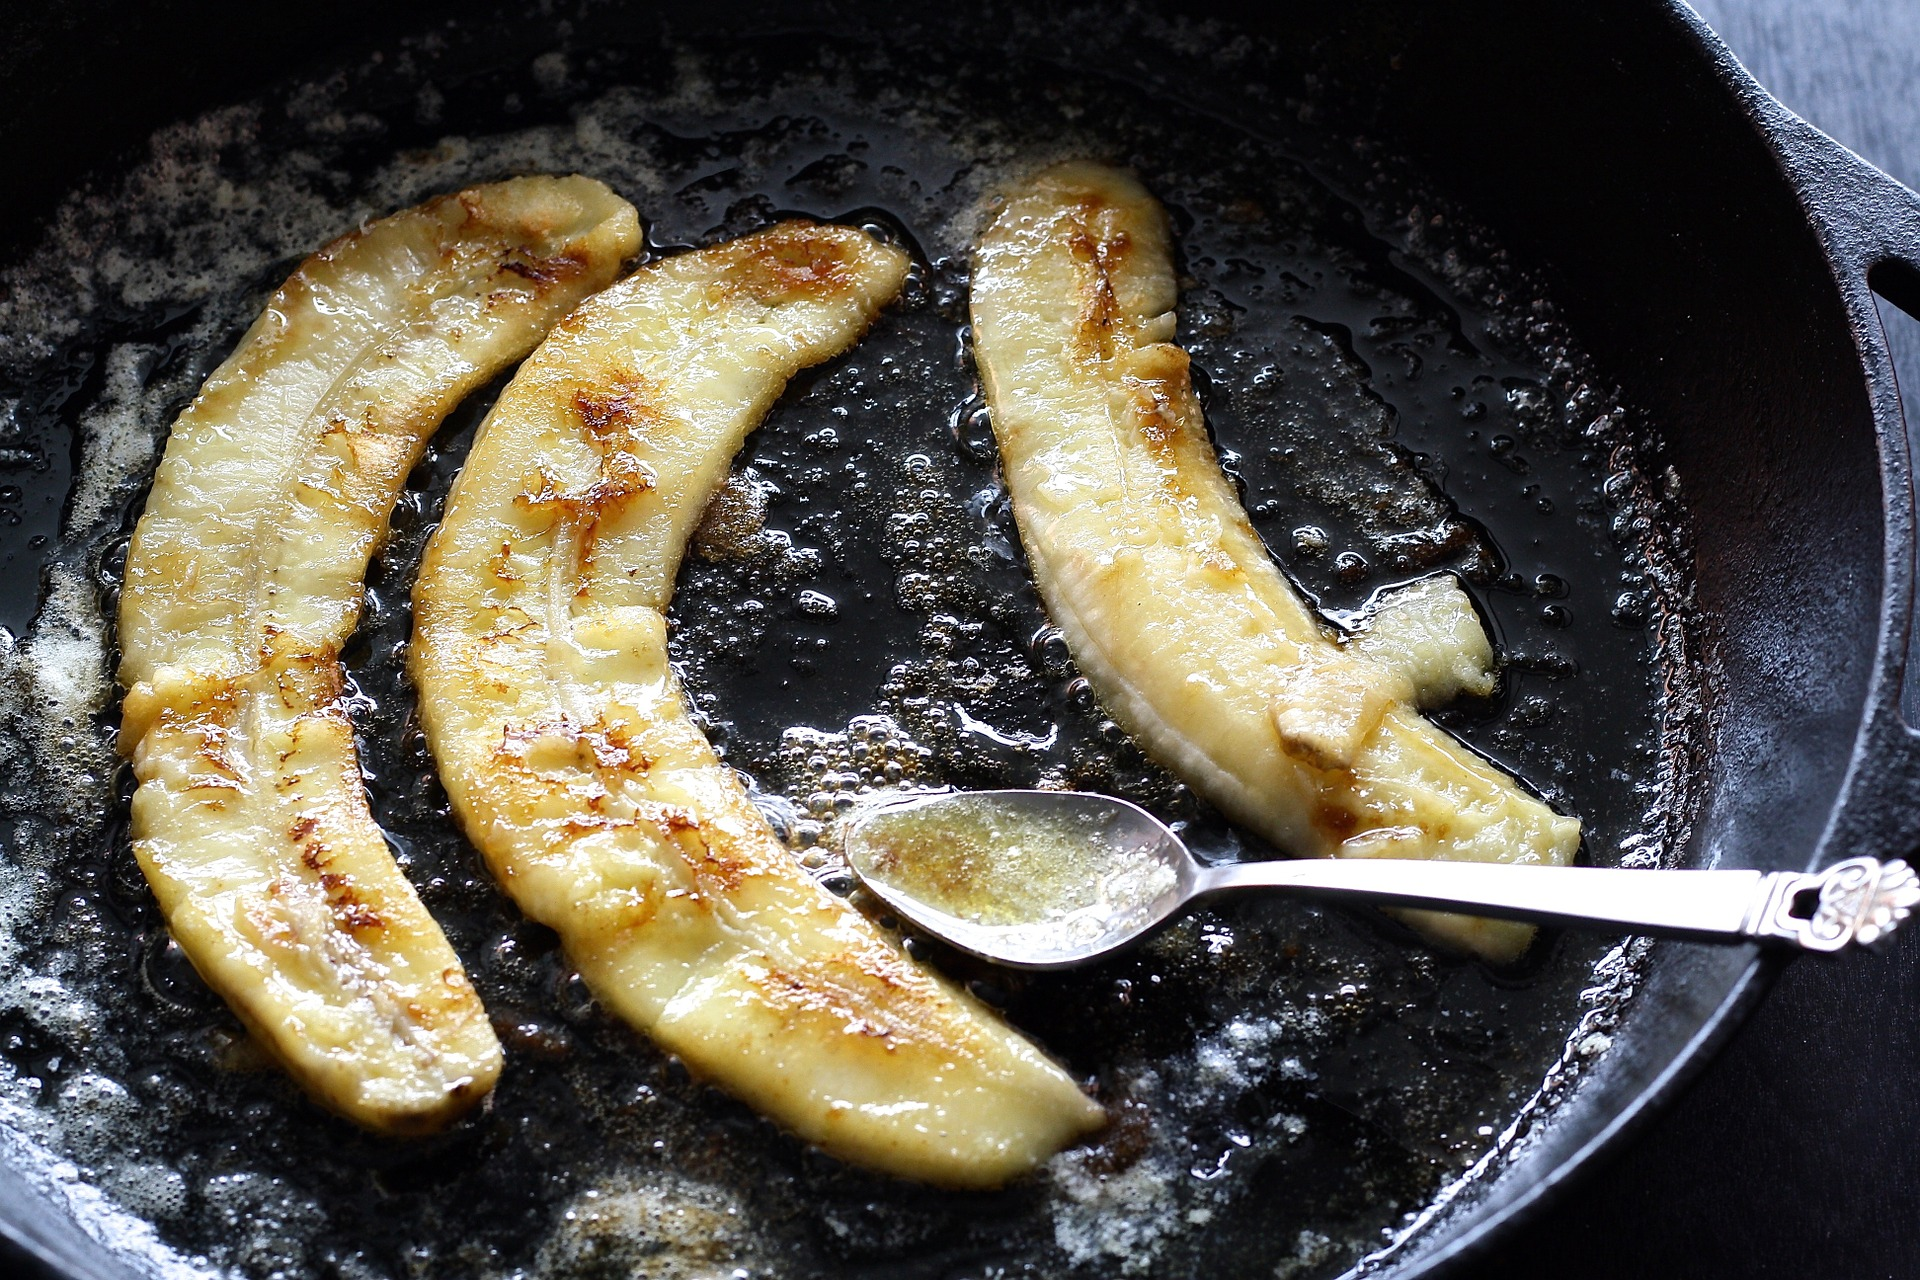 You're probably seasoning your cast iron pan wrong